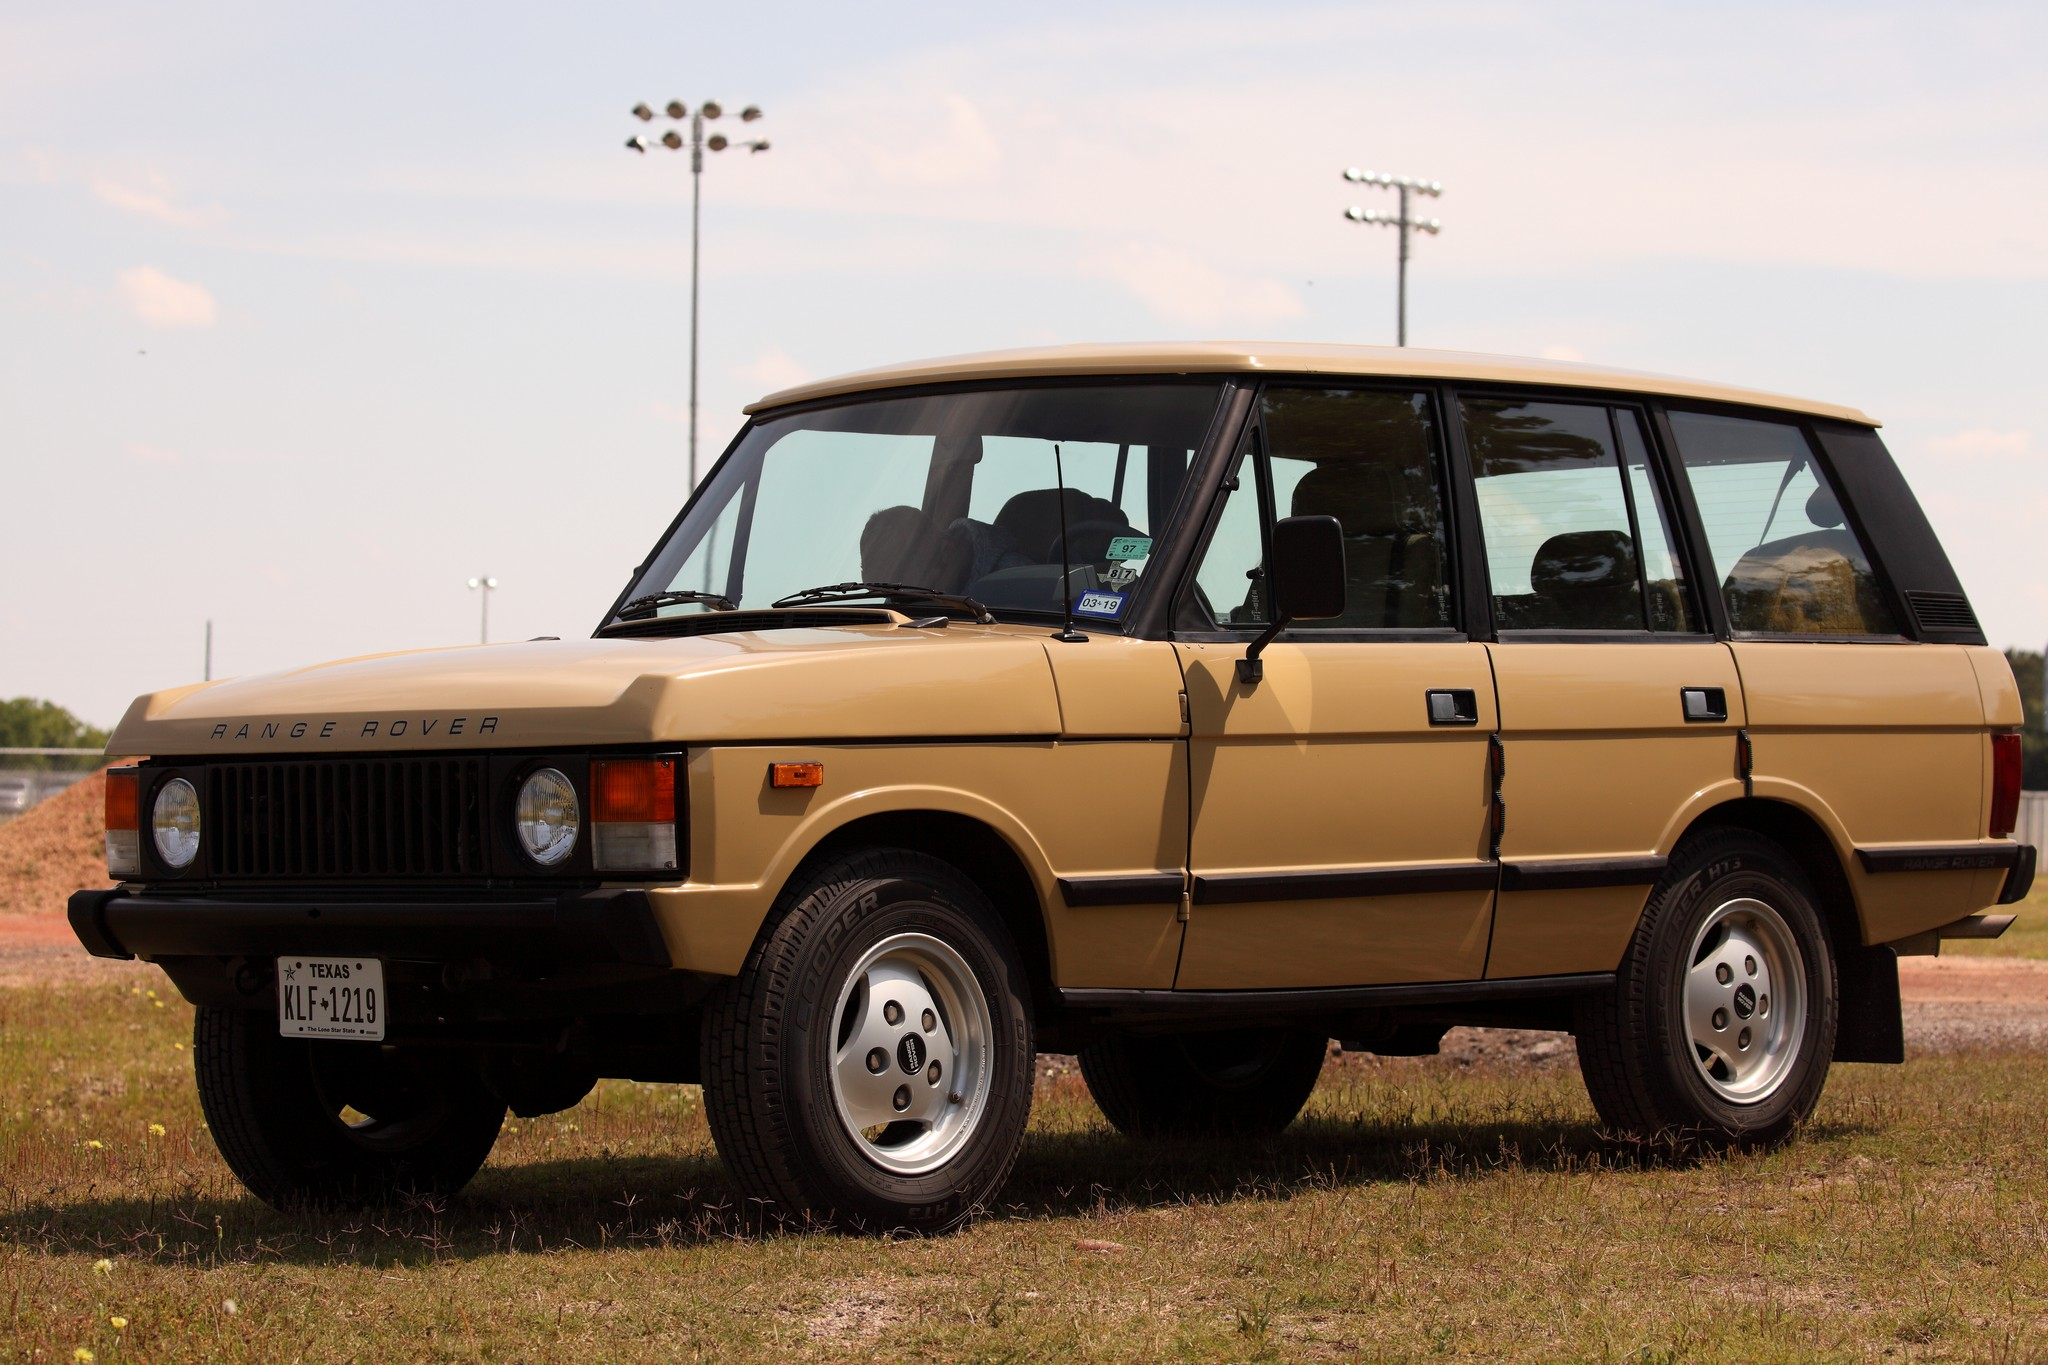 New member, first time Rover owner - 1987 RRC-img_2812_canon-eos-5d-mark-ii_0_100mm_7.1_400s_2048x1536.jpg